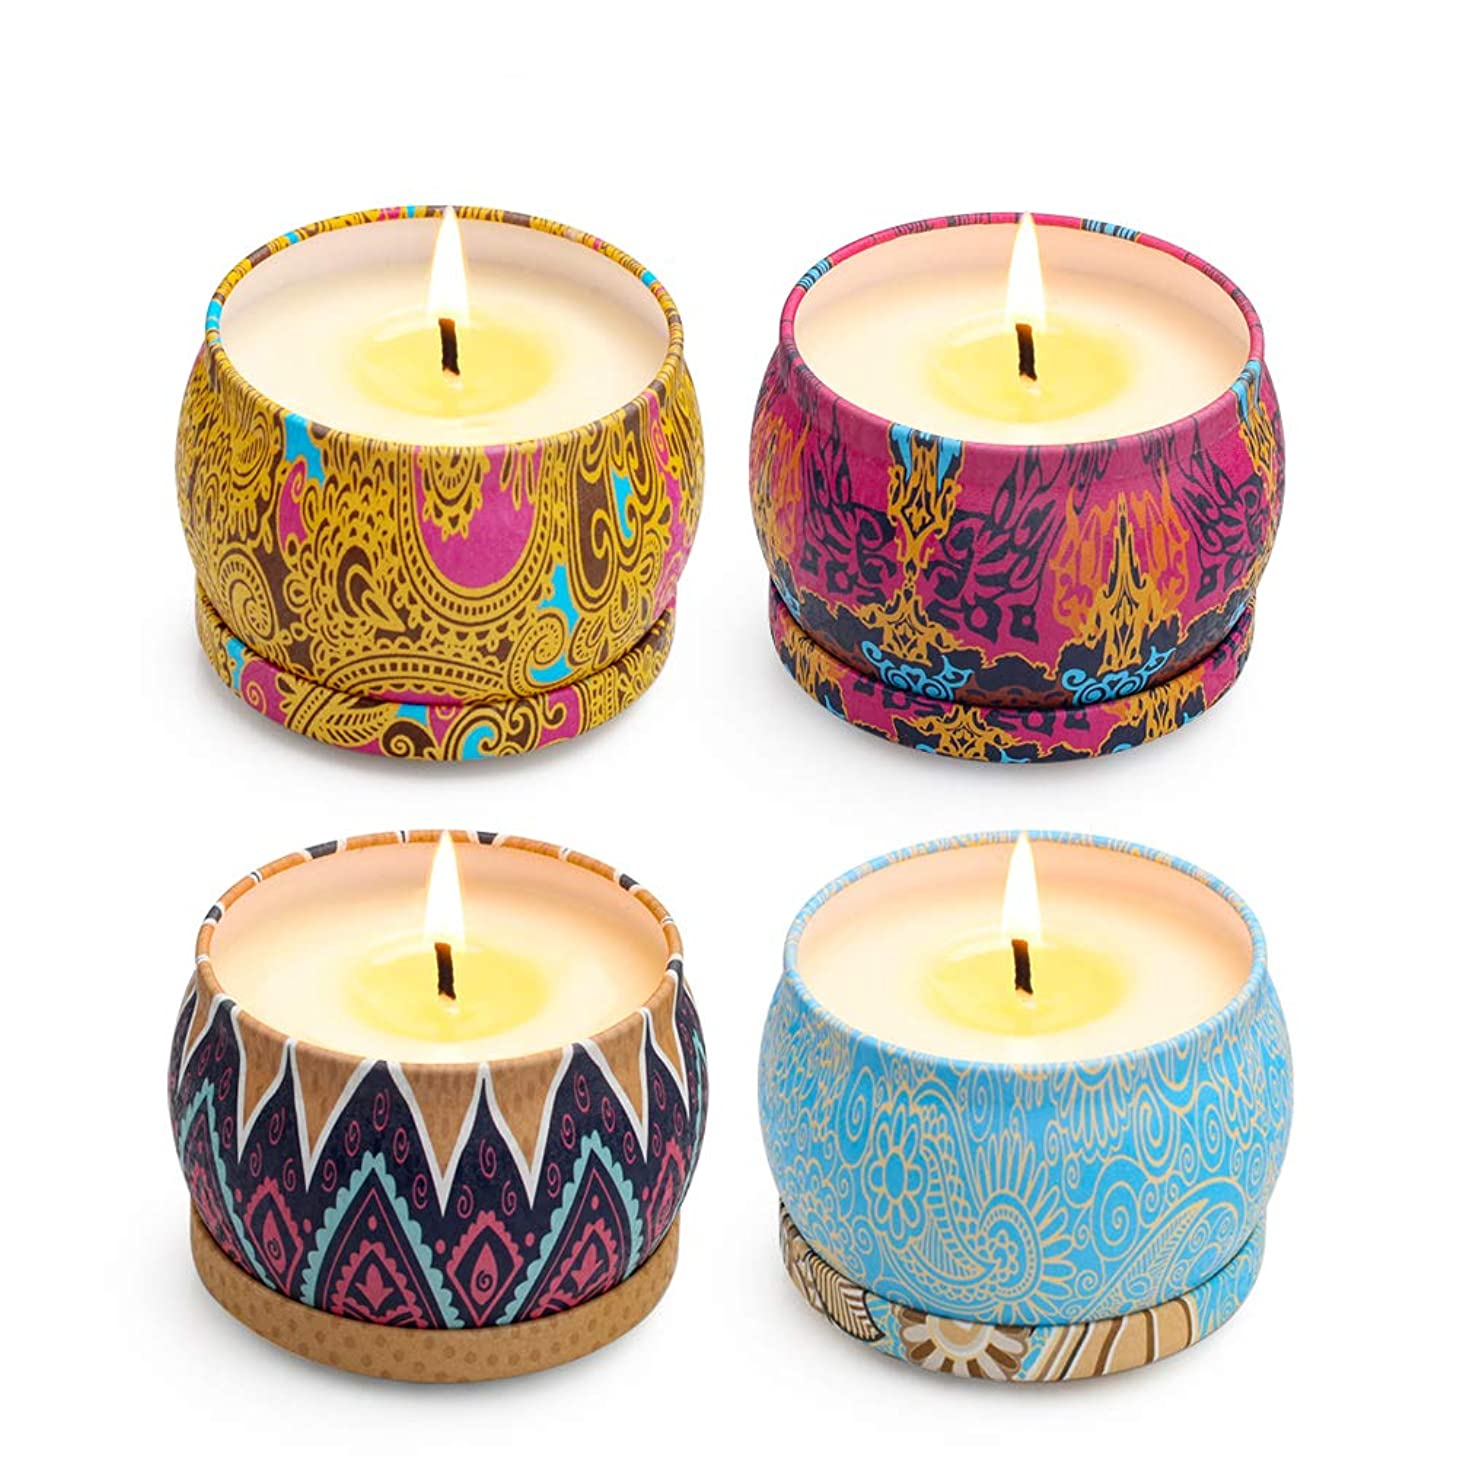 Scented Candles Set, Natural Soy Wax Fragrance Candle Boxed Gift Set Travel Tin Candles, Lemon, Lavender, Mediterranean Fig, and Spring for Aromatherapy, Stress Relief - 4 Pack (4.4oz each) ssvelryii